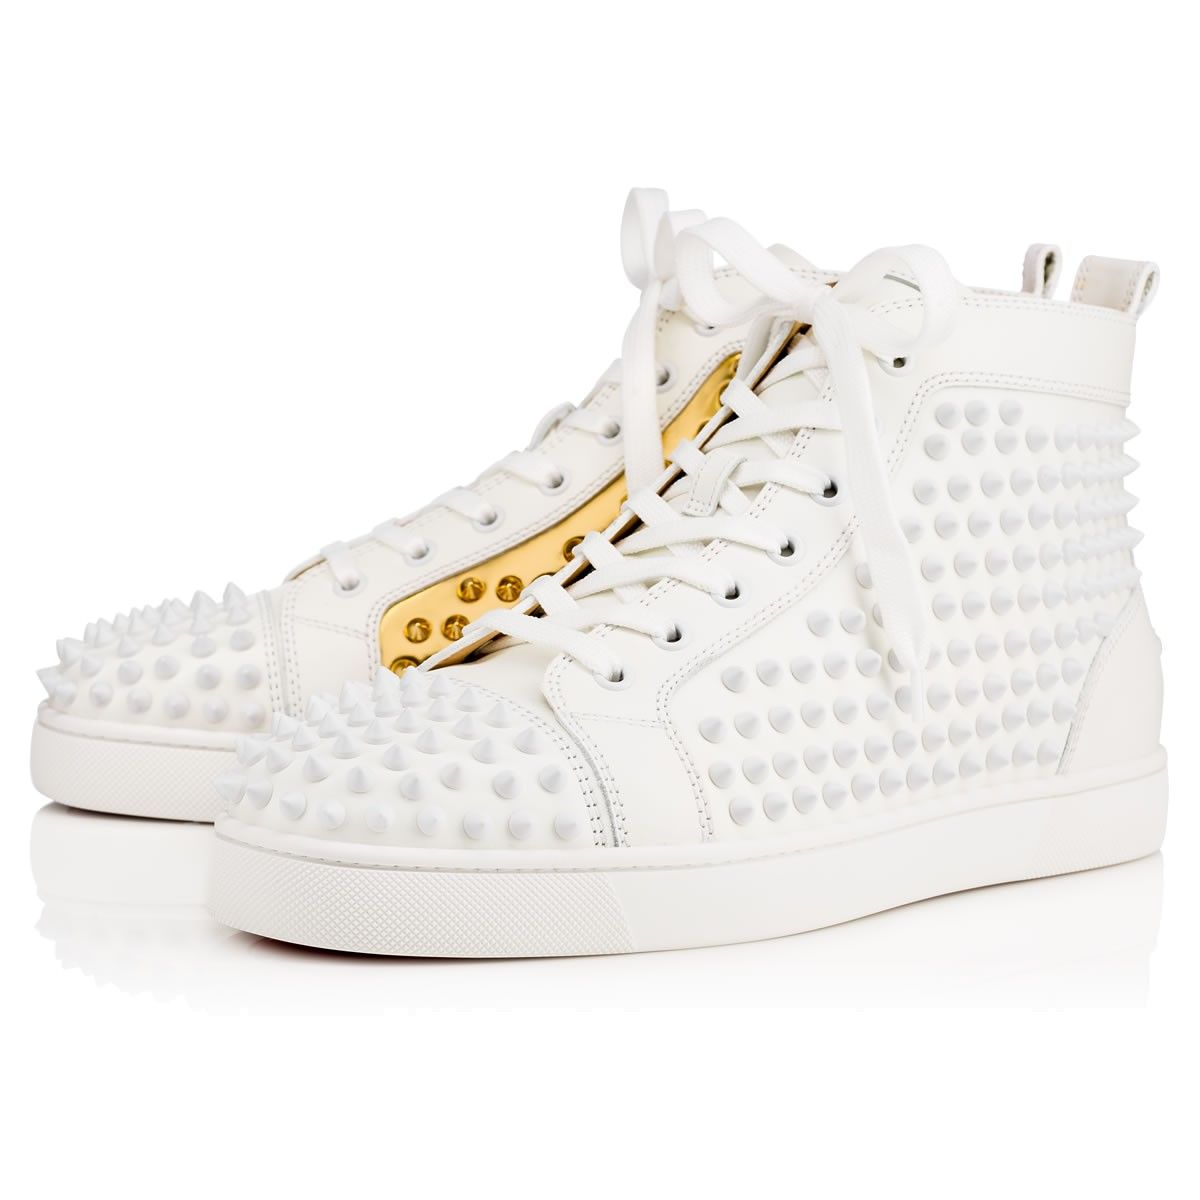 958dac9dc50 Shoes - Louis Spikes Men's Flat - Christian Louboutin | Nordstrom ...